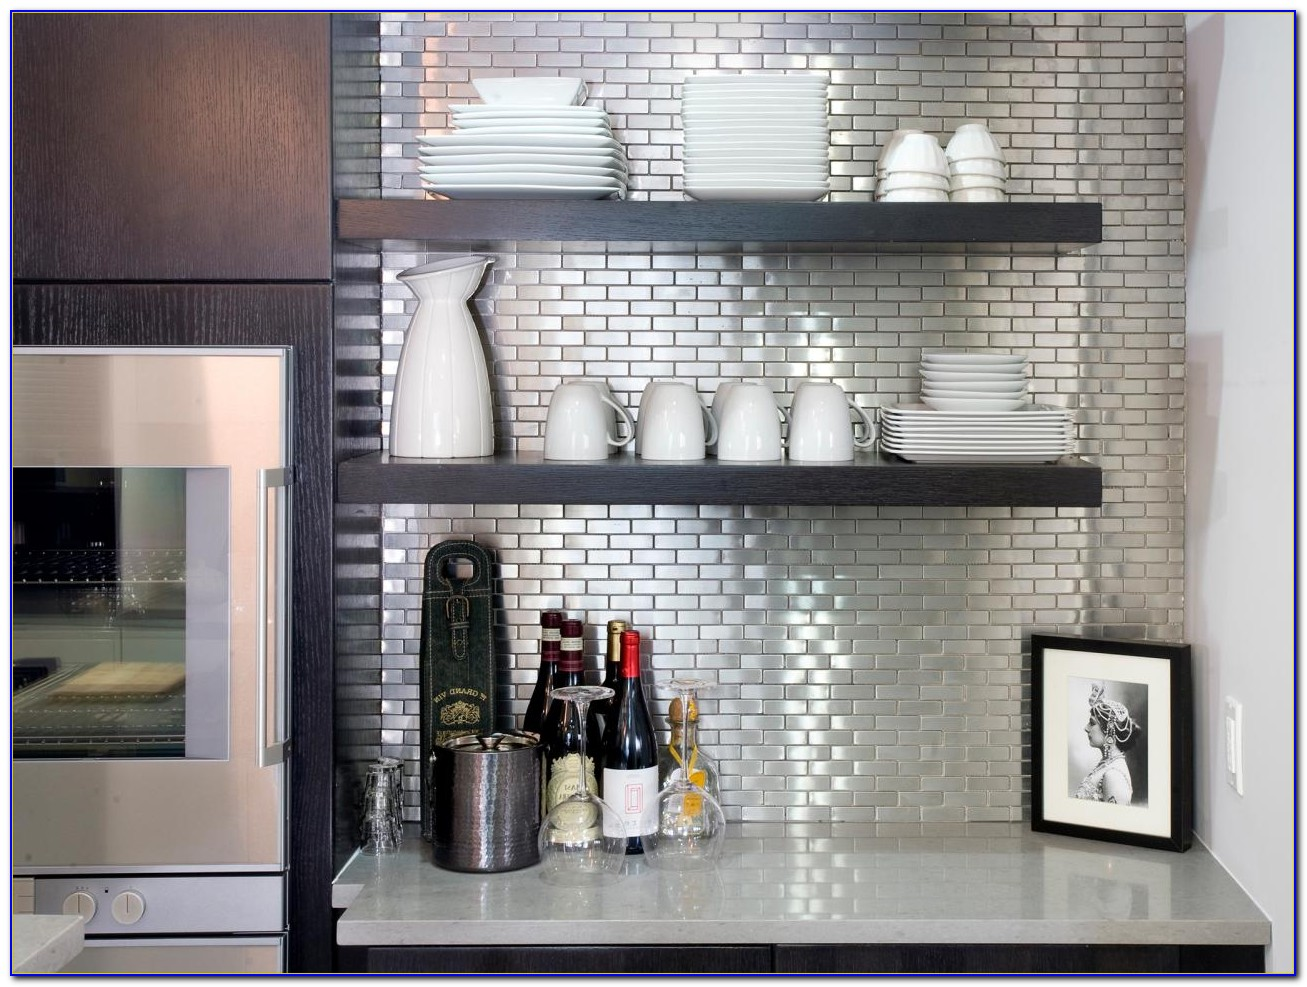 Stainless Steel Tiles Backsplash Peel Stick